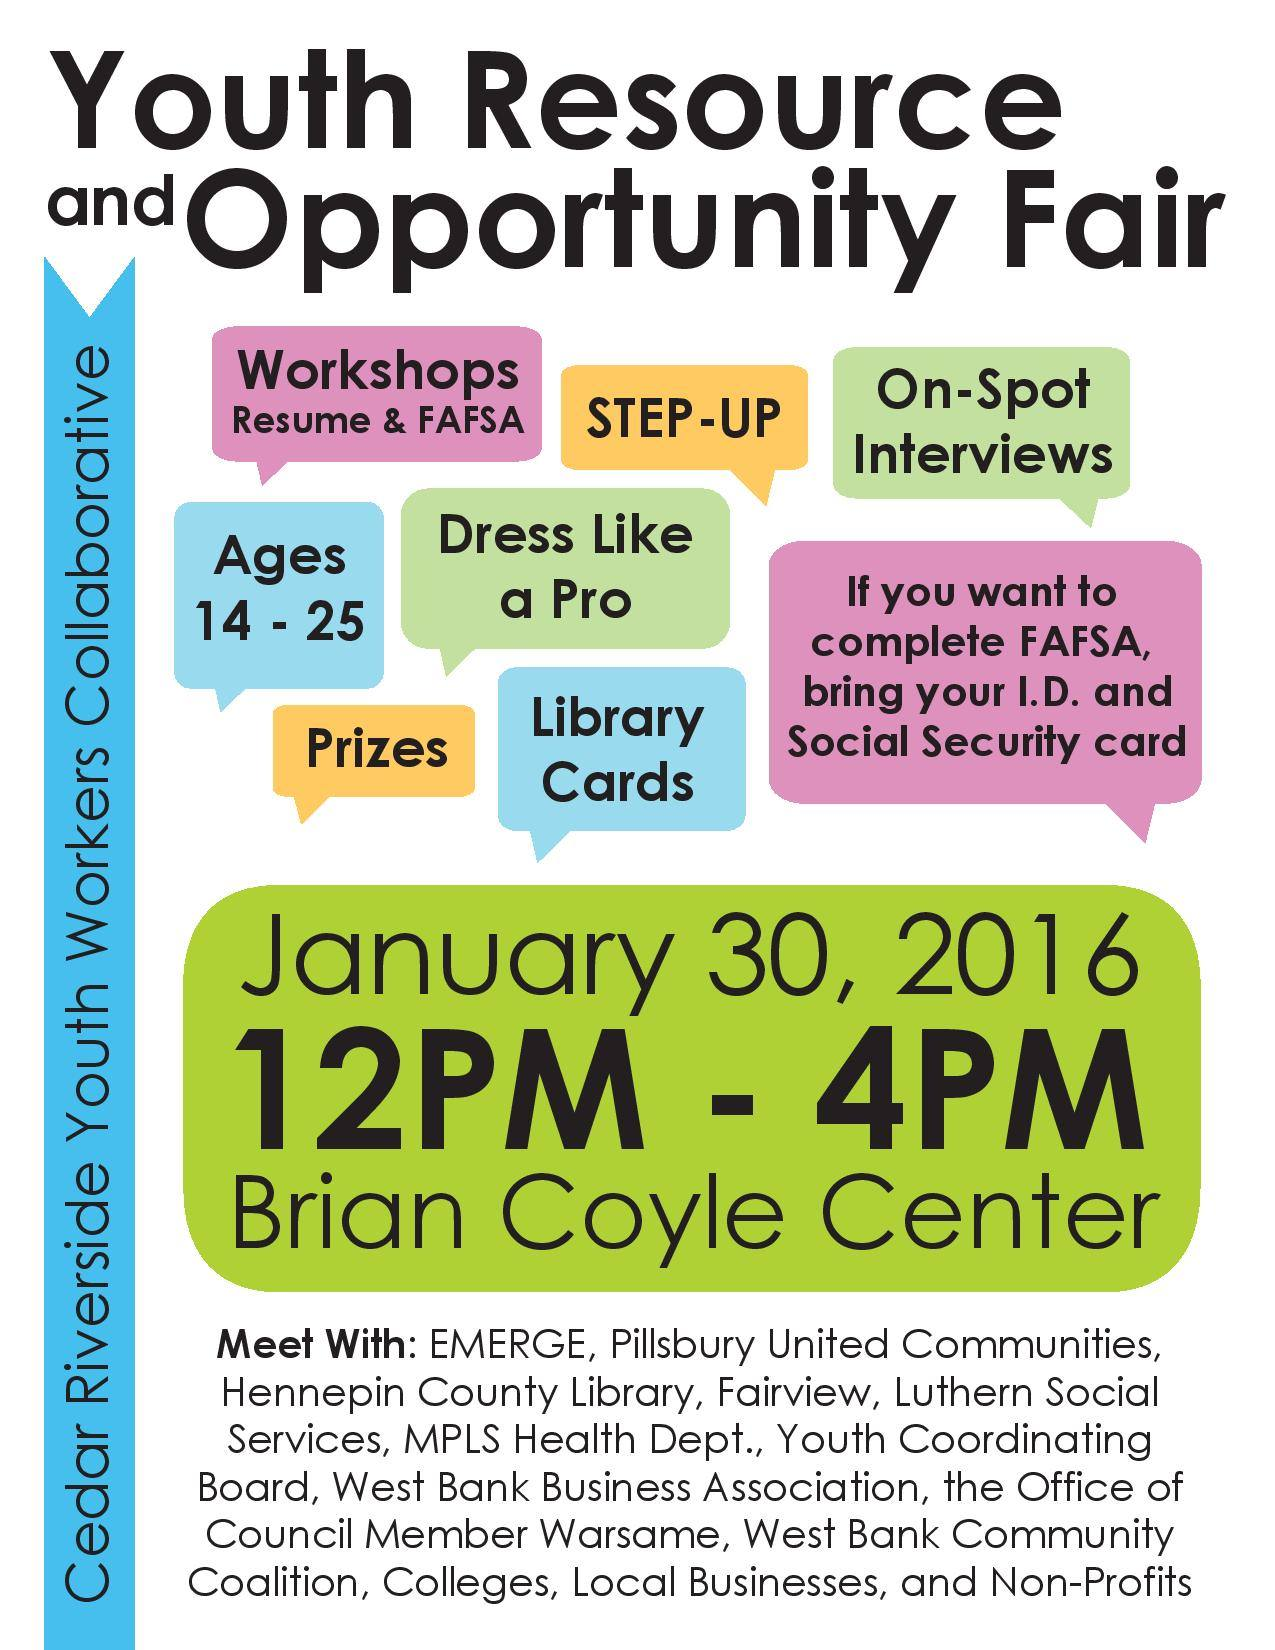 Youth Resources and Opportunity Fair!